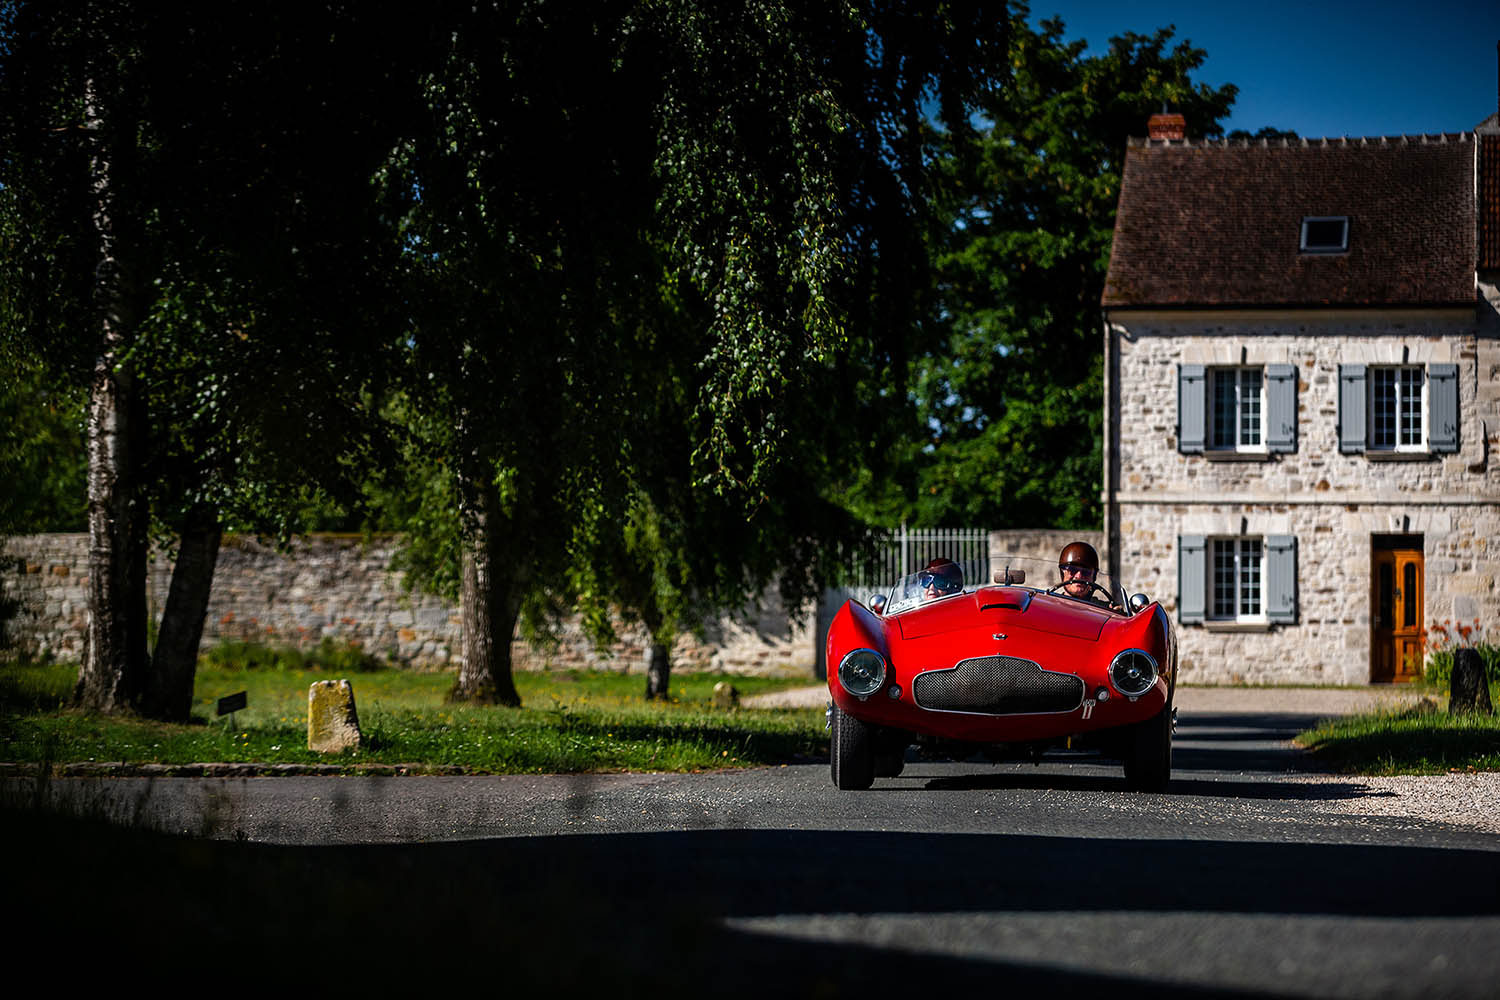 2019_PeterAuto_Chantilly_AlexisGoure_1115.jpg